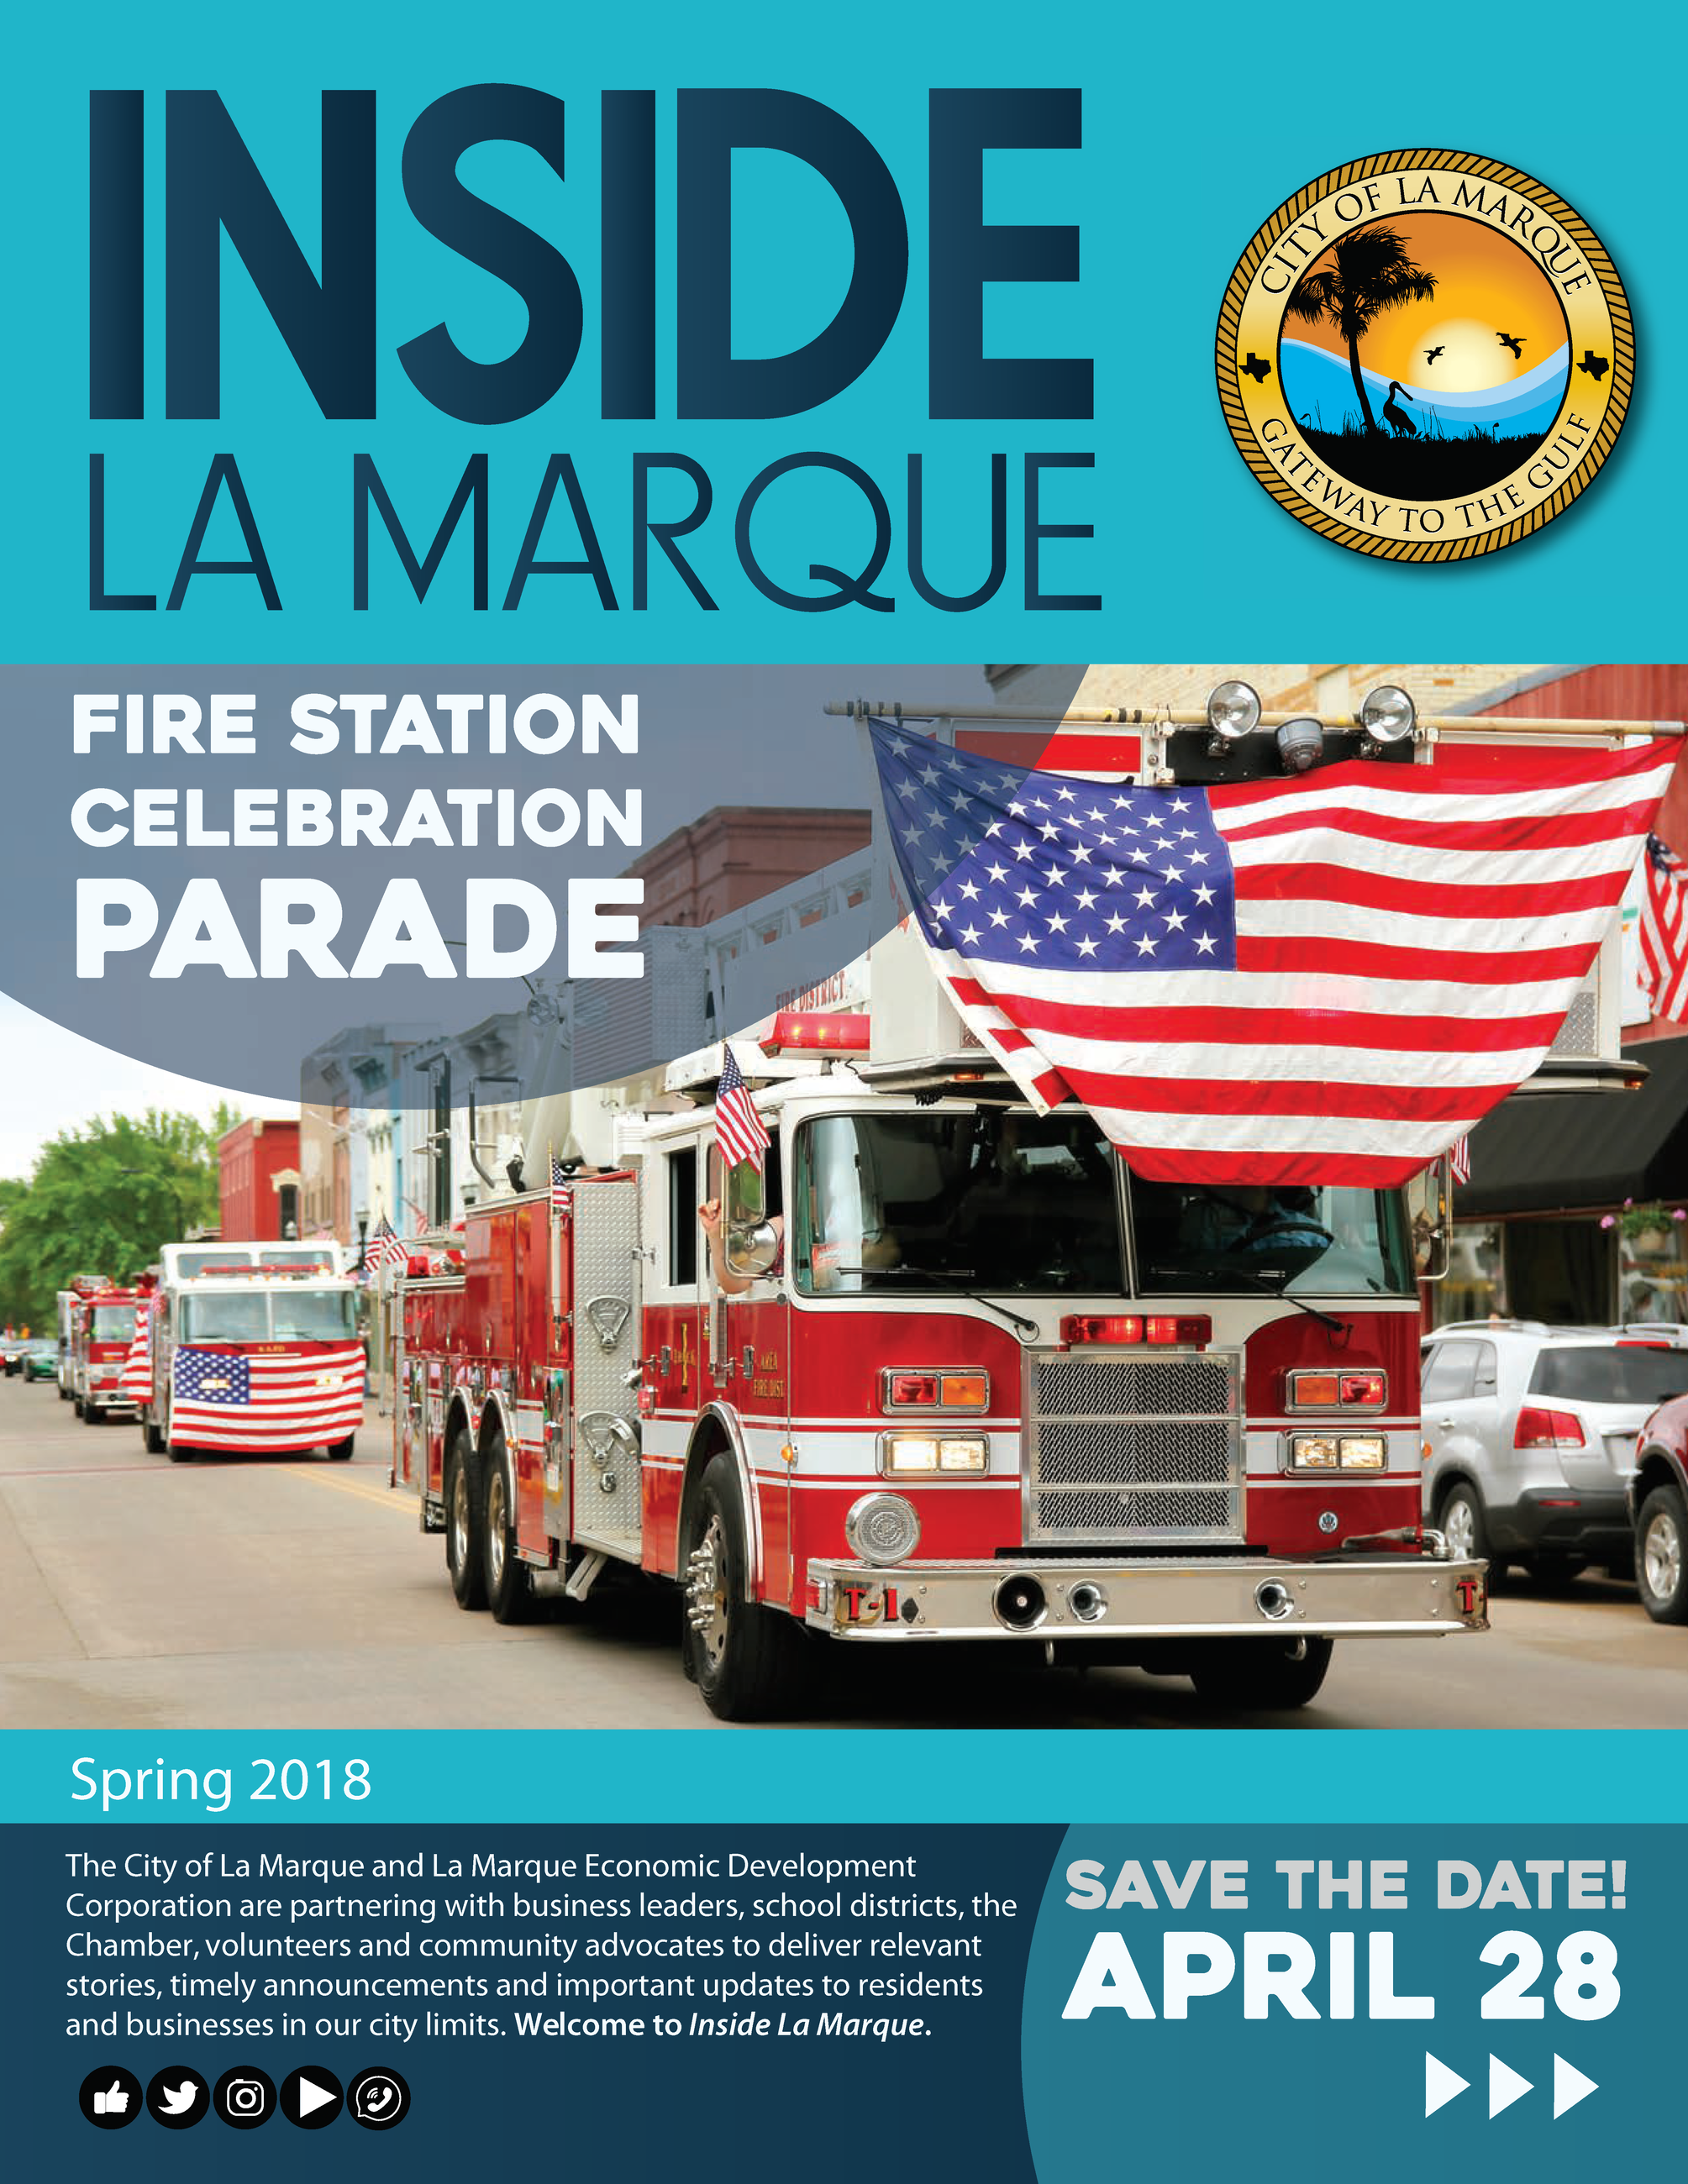 Volume 7_Cover_Inside La Marque_Spring 2018